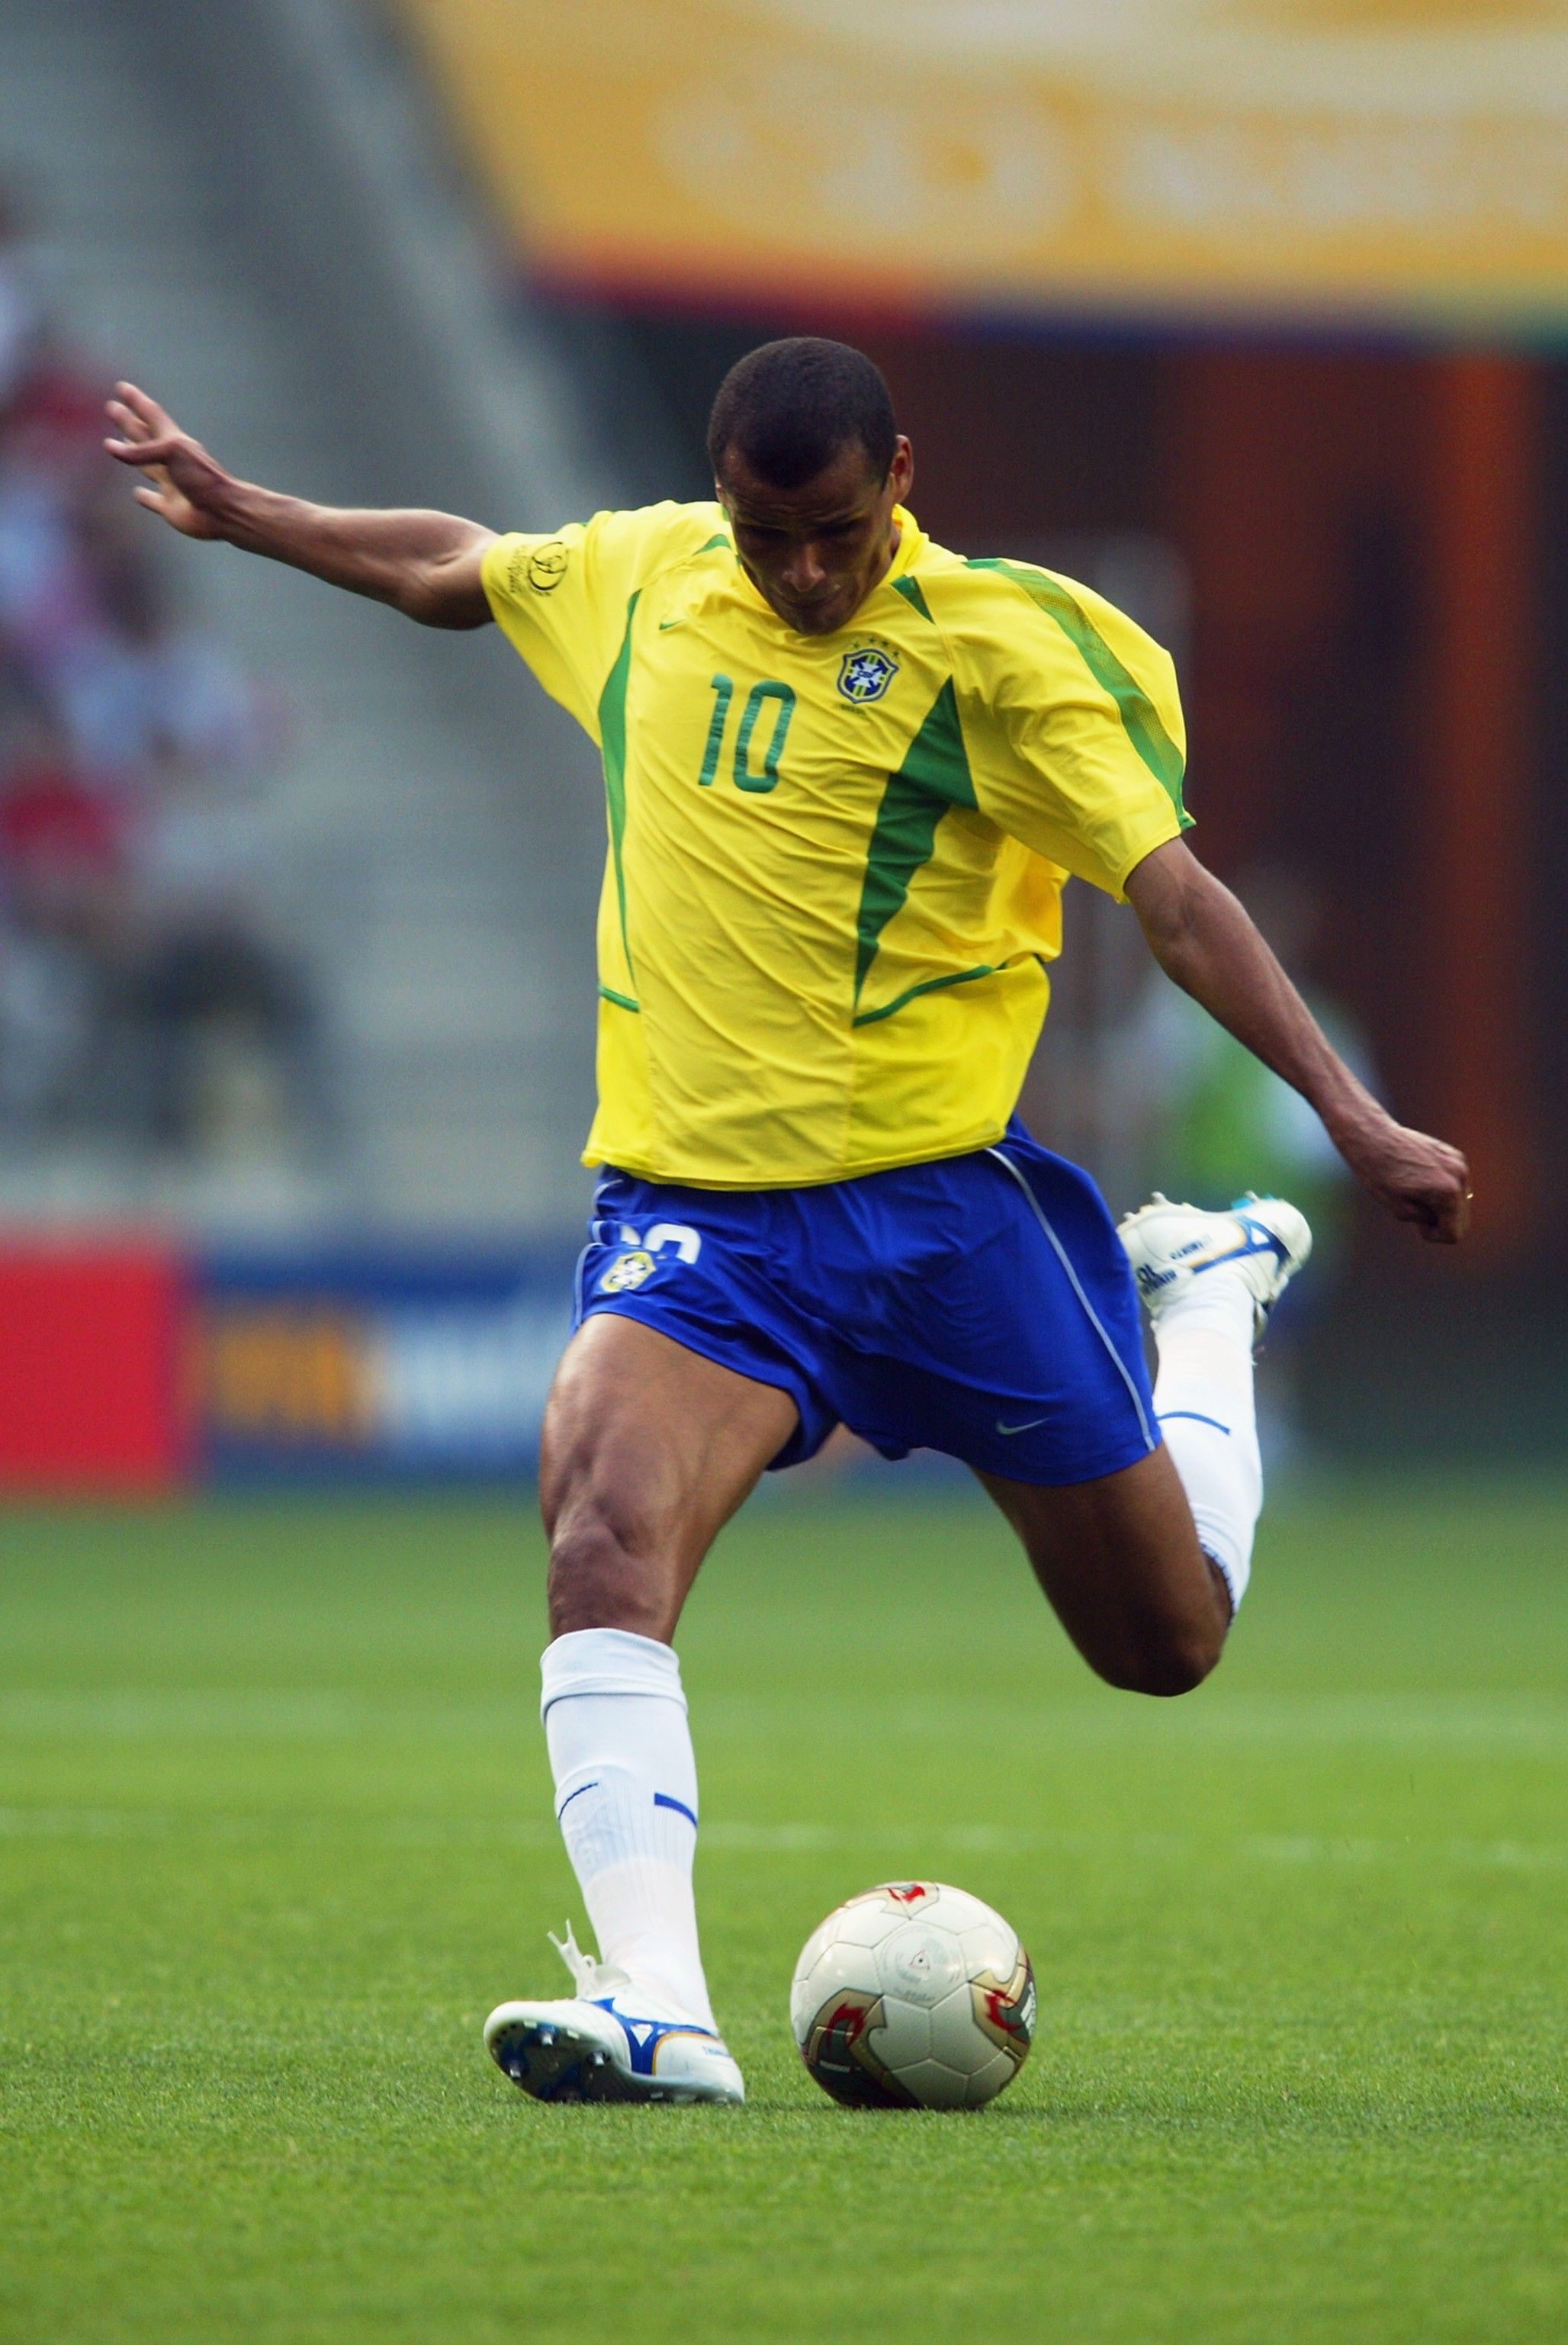 Rivaldo (Foto: Getty Images)